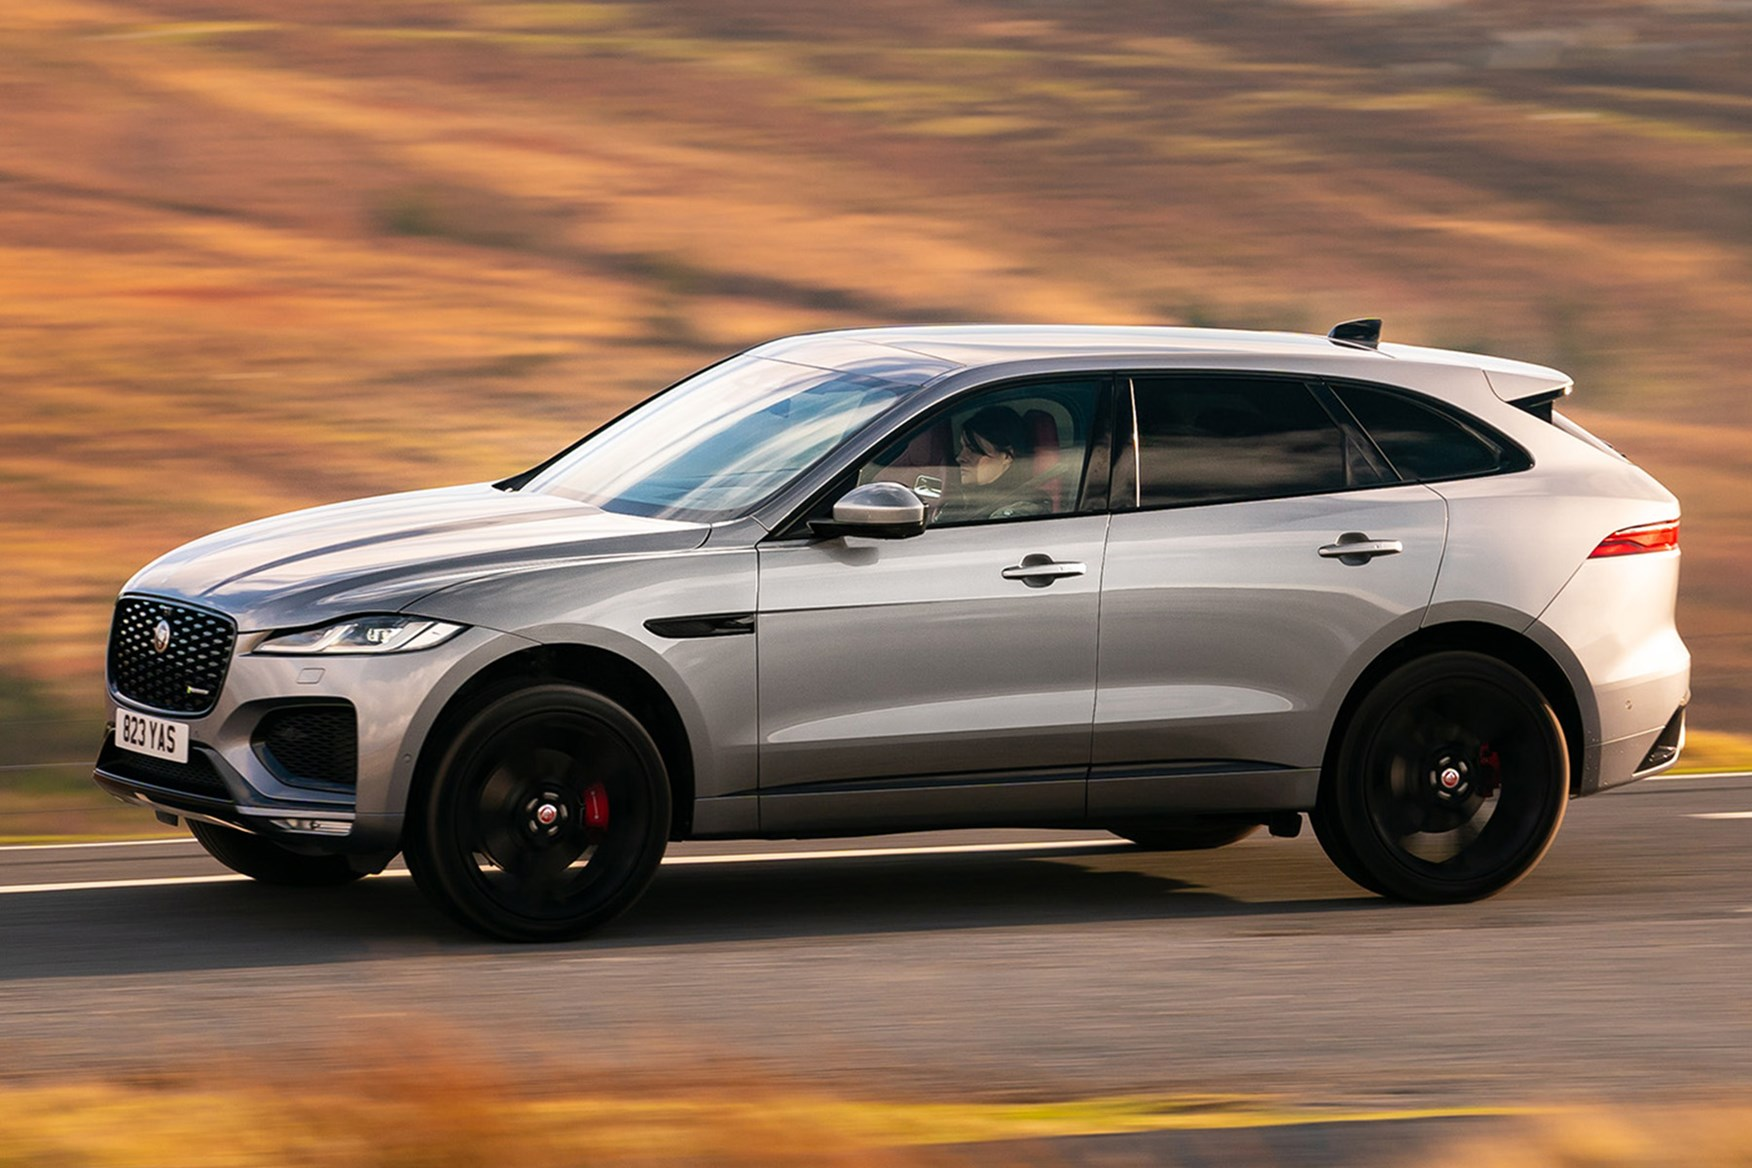 Jaguar F-Pace (16 on) - rated 4 out of 5